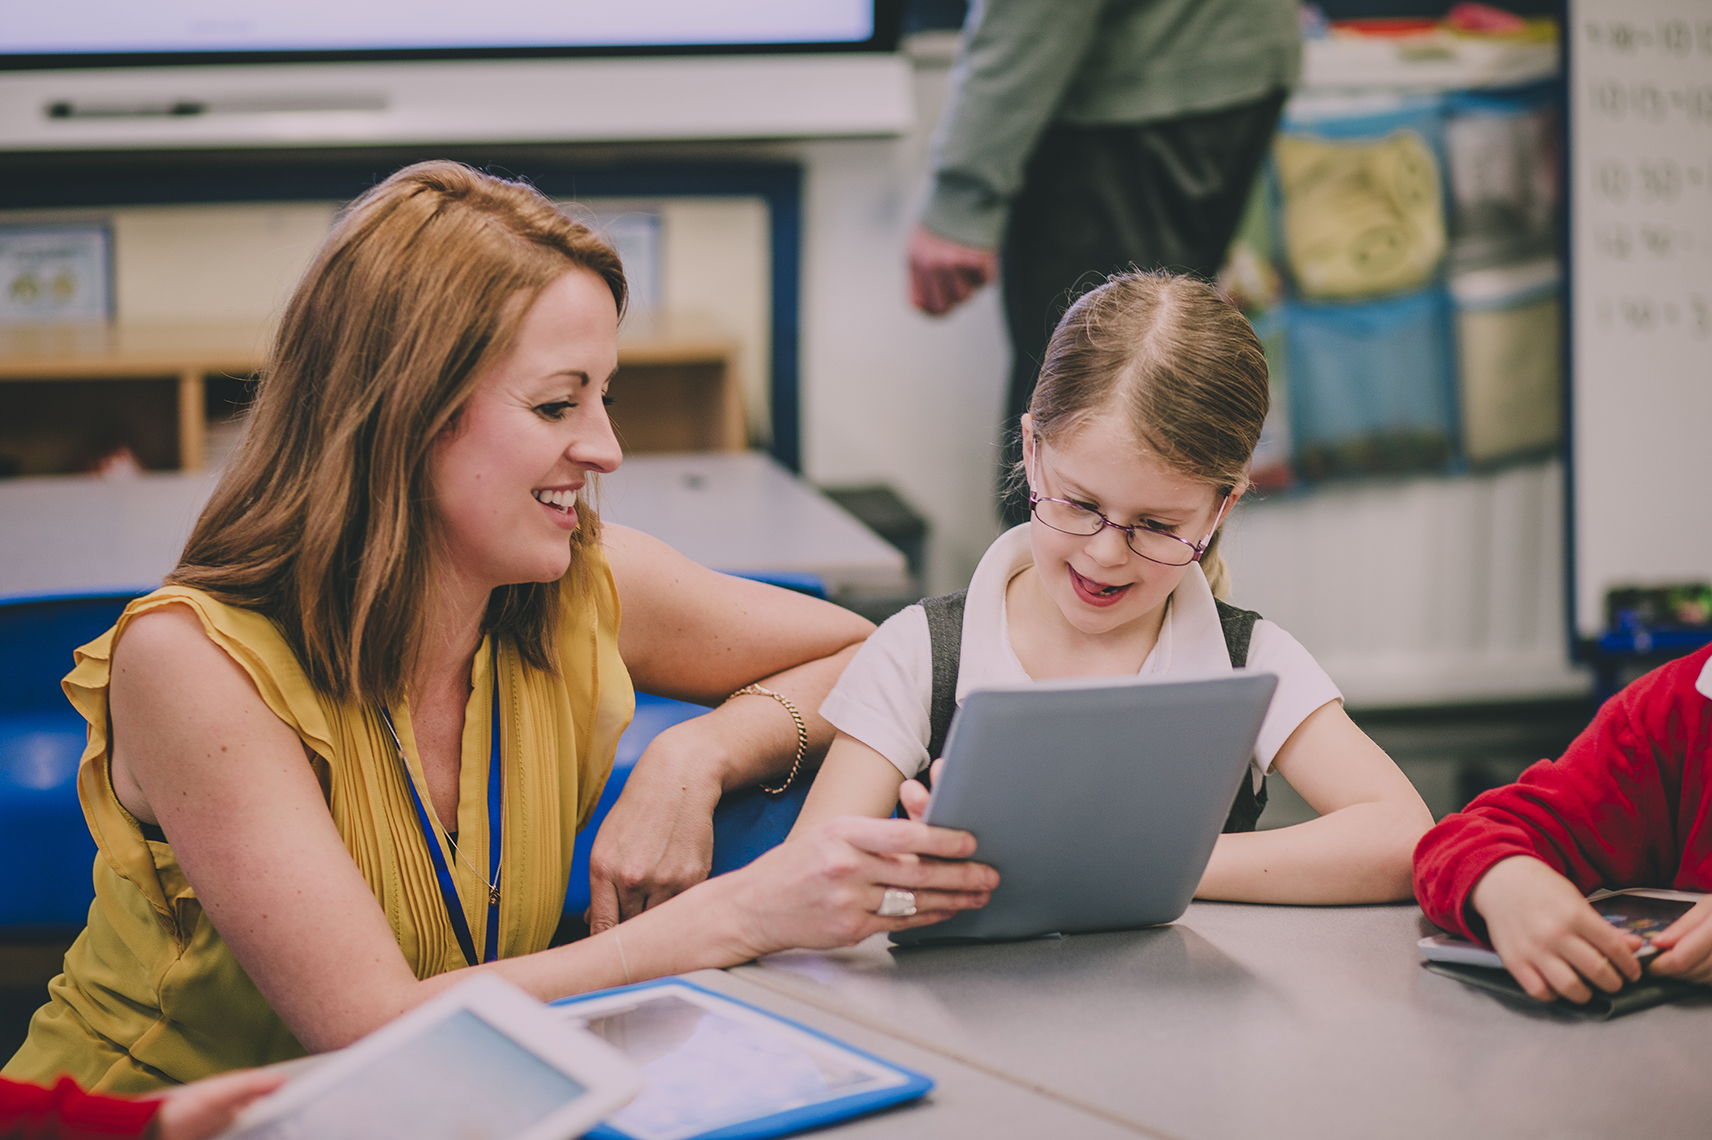 Teacher trust Fast ForWord; a teacher working with an elementary student on a tablet at a classroom table